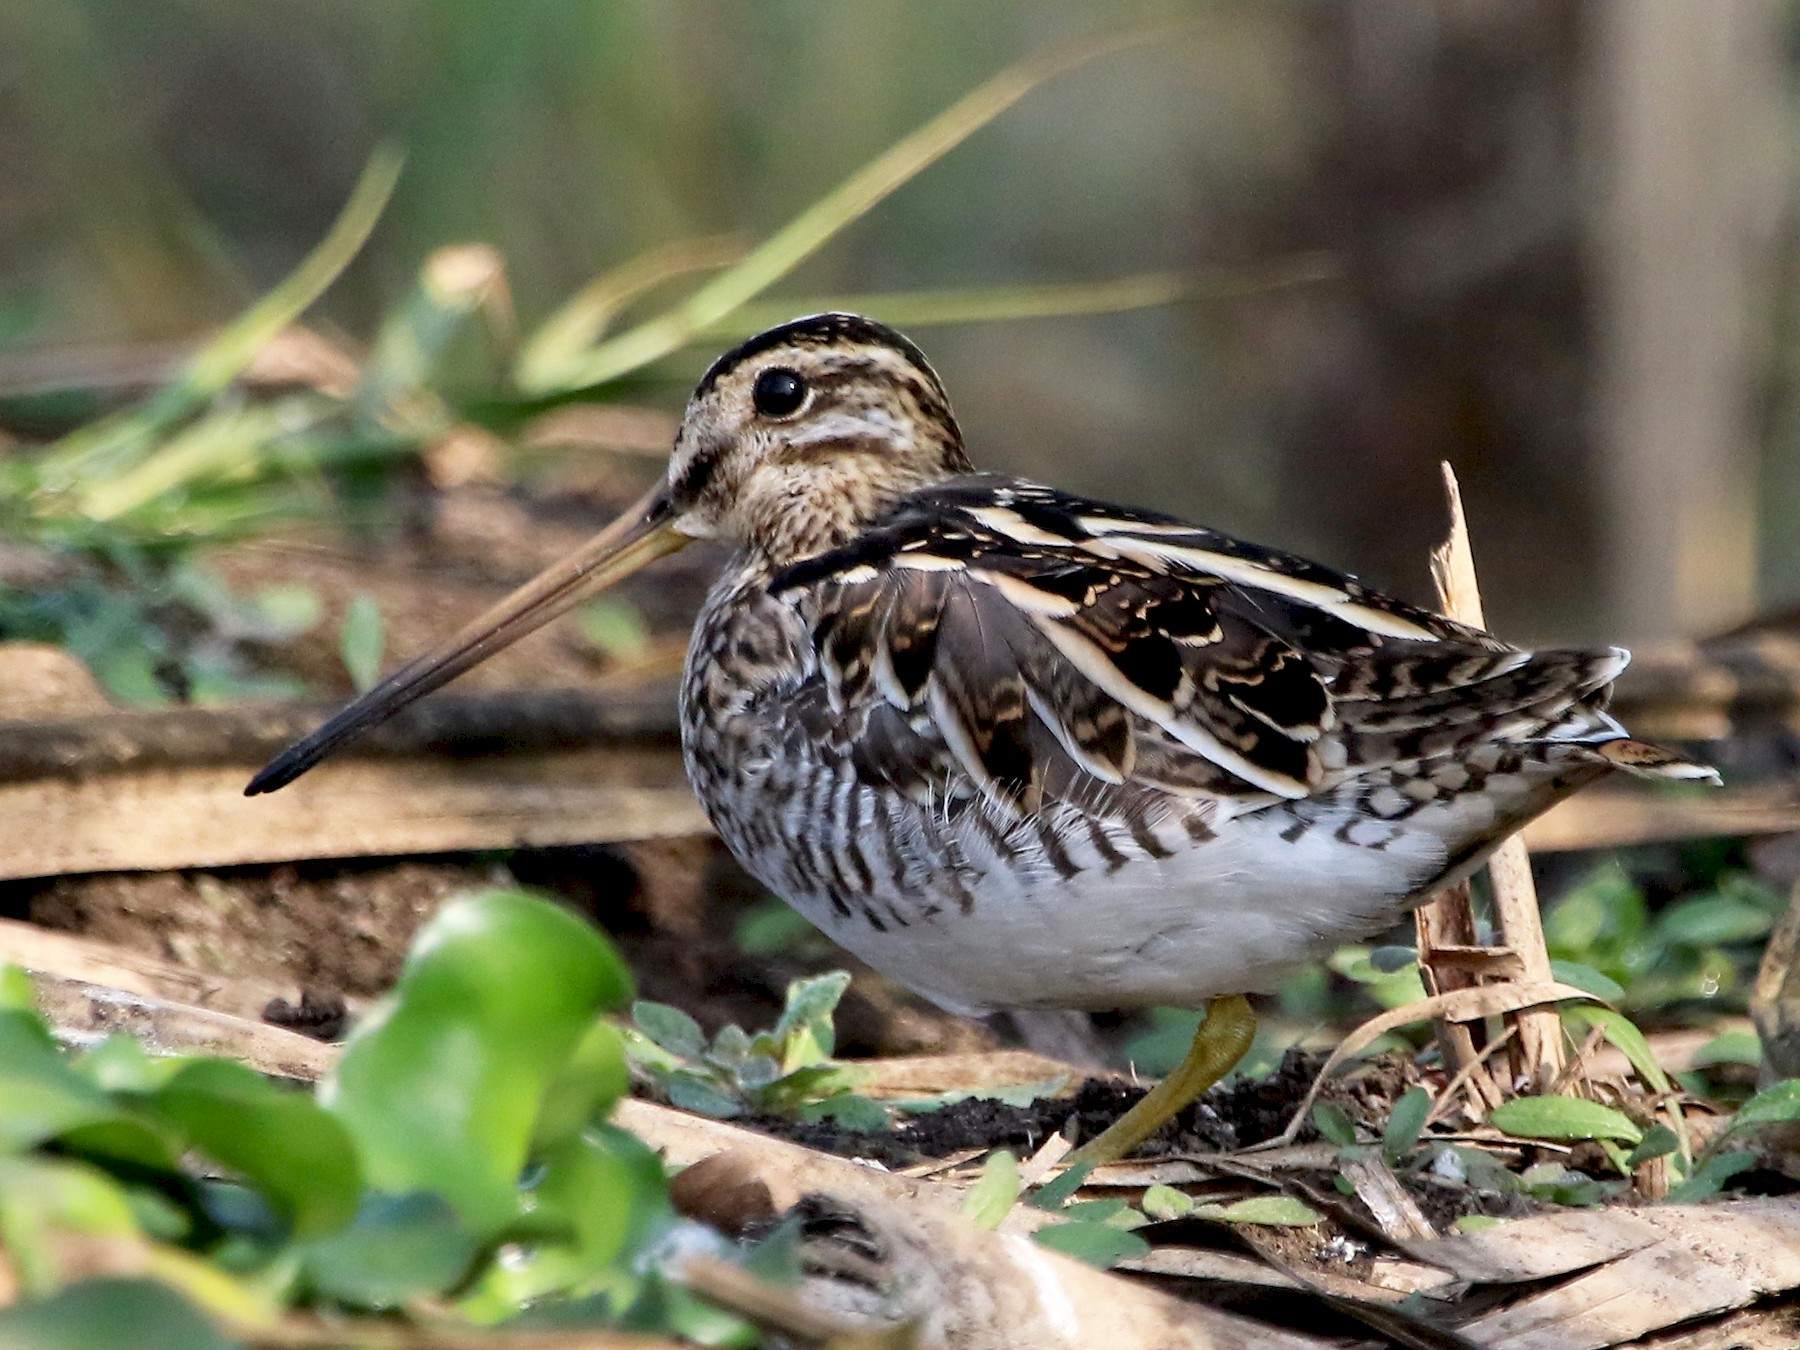 Common Snipe - Sneha Gupta